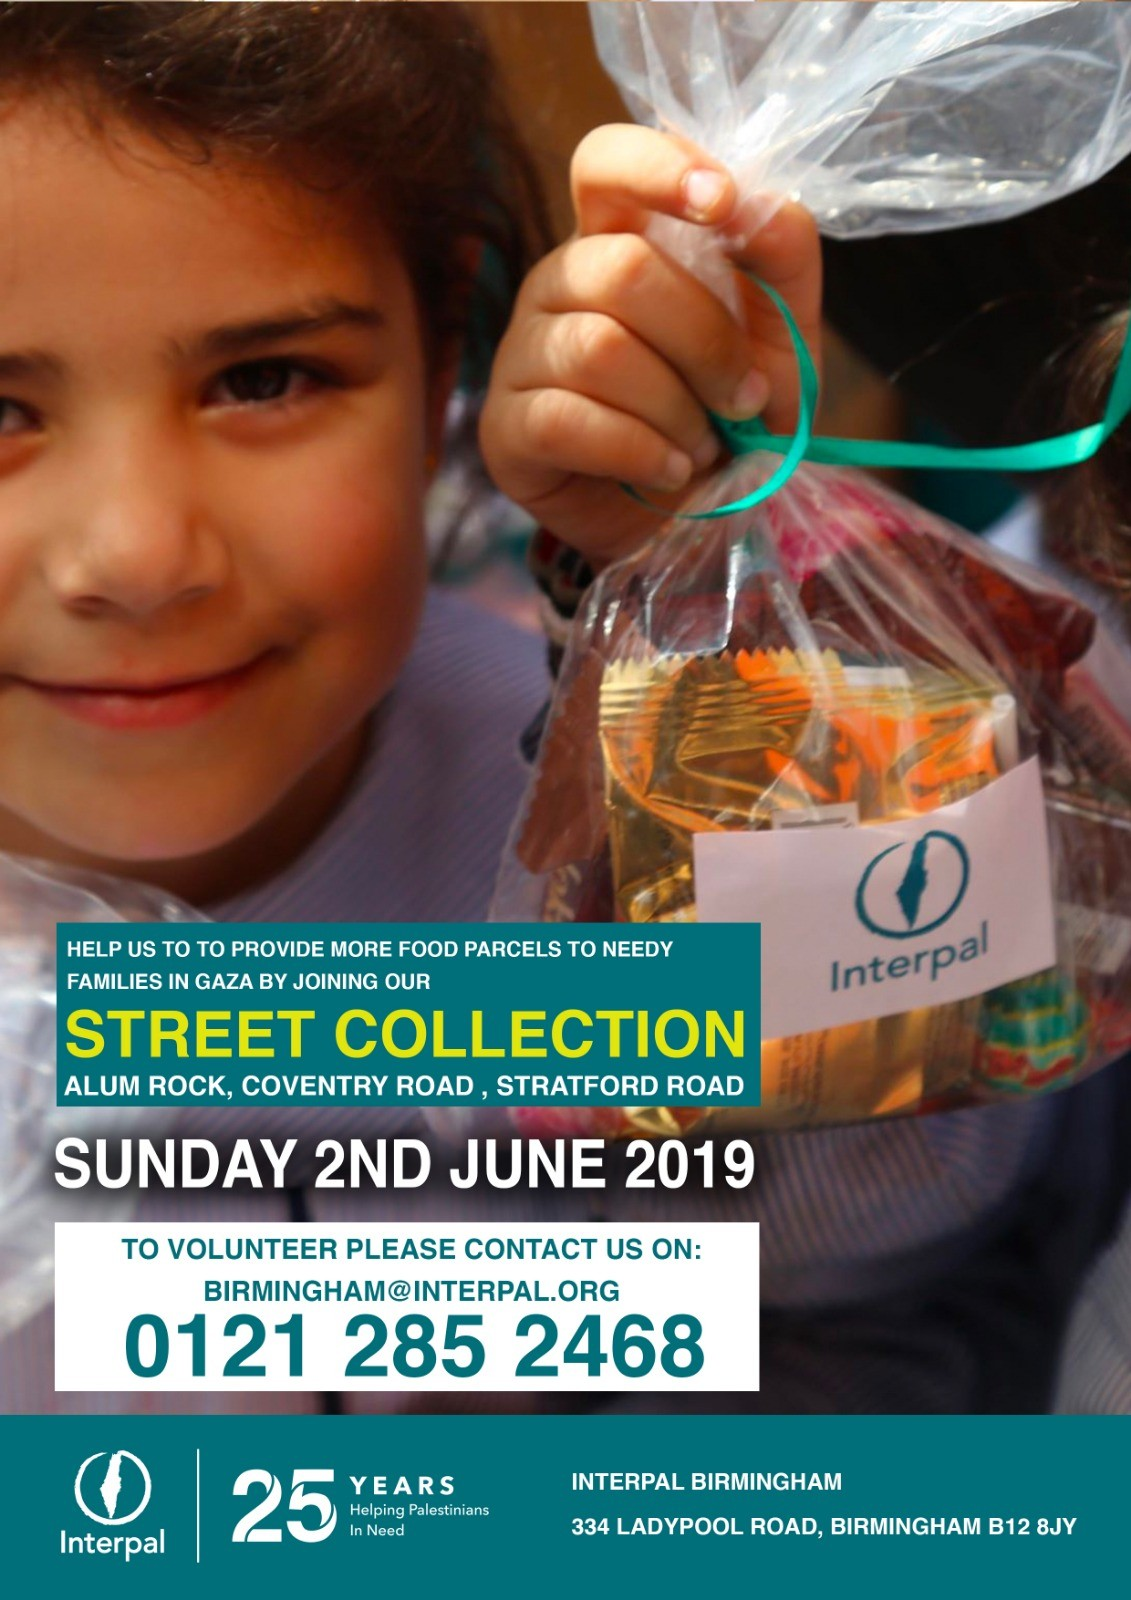 Street Collections for Palestine